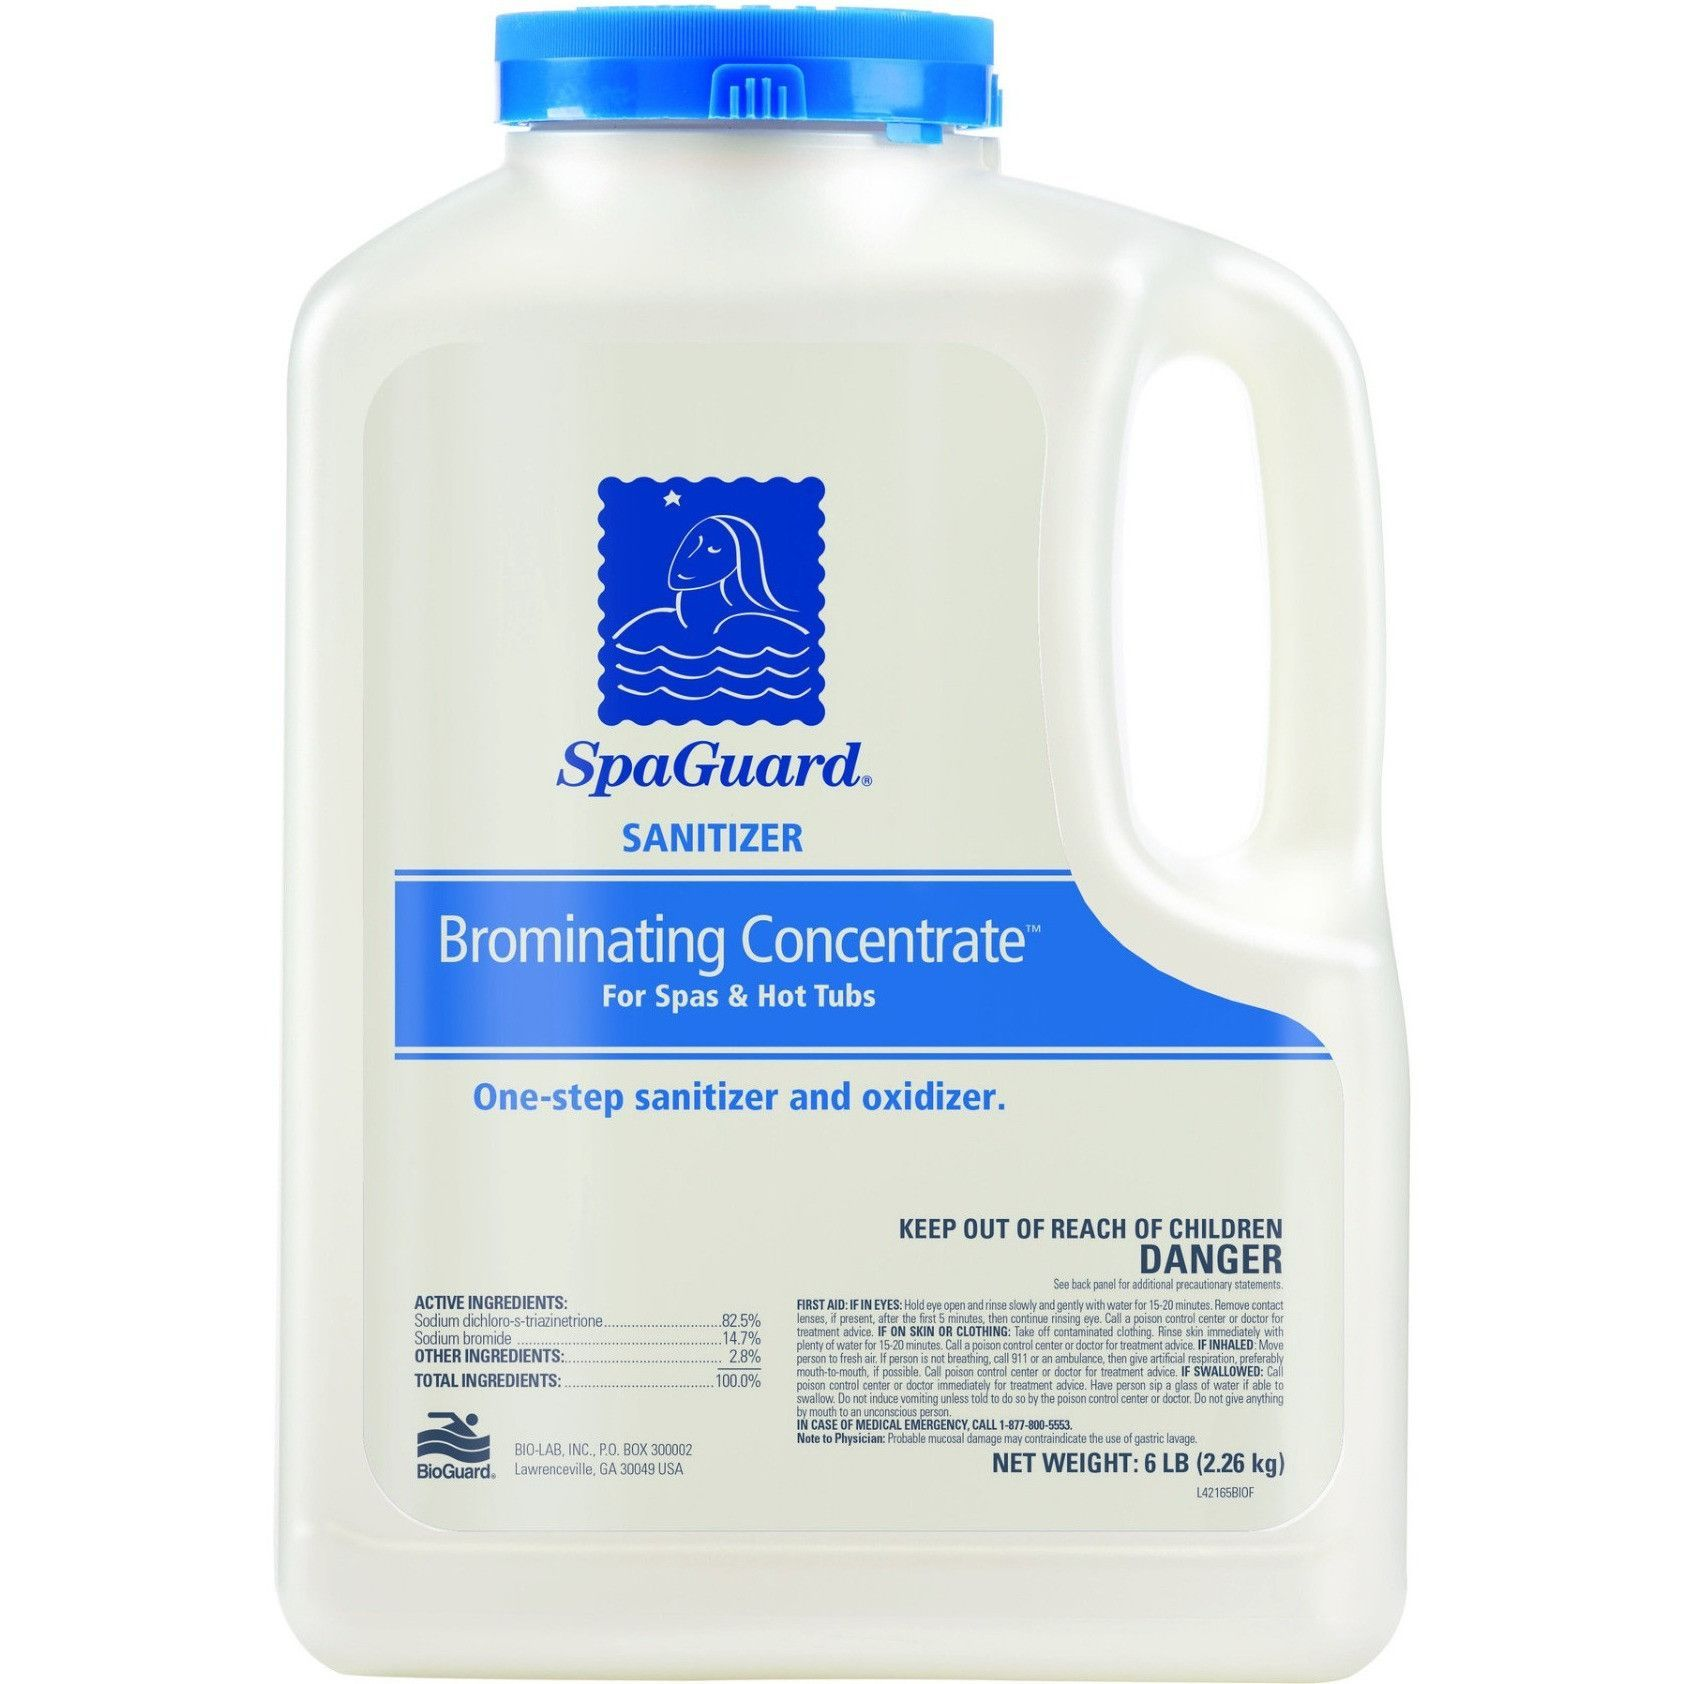 SpaGuard Brominating Concentrate